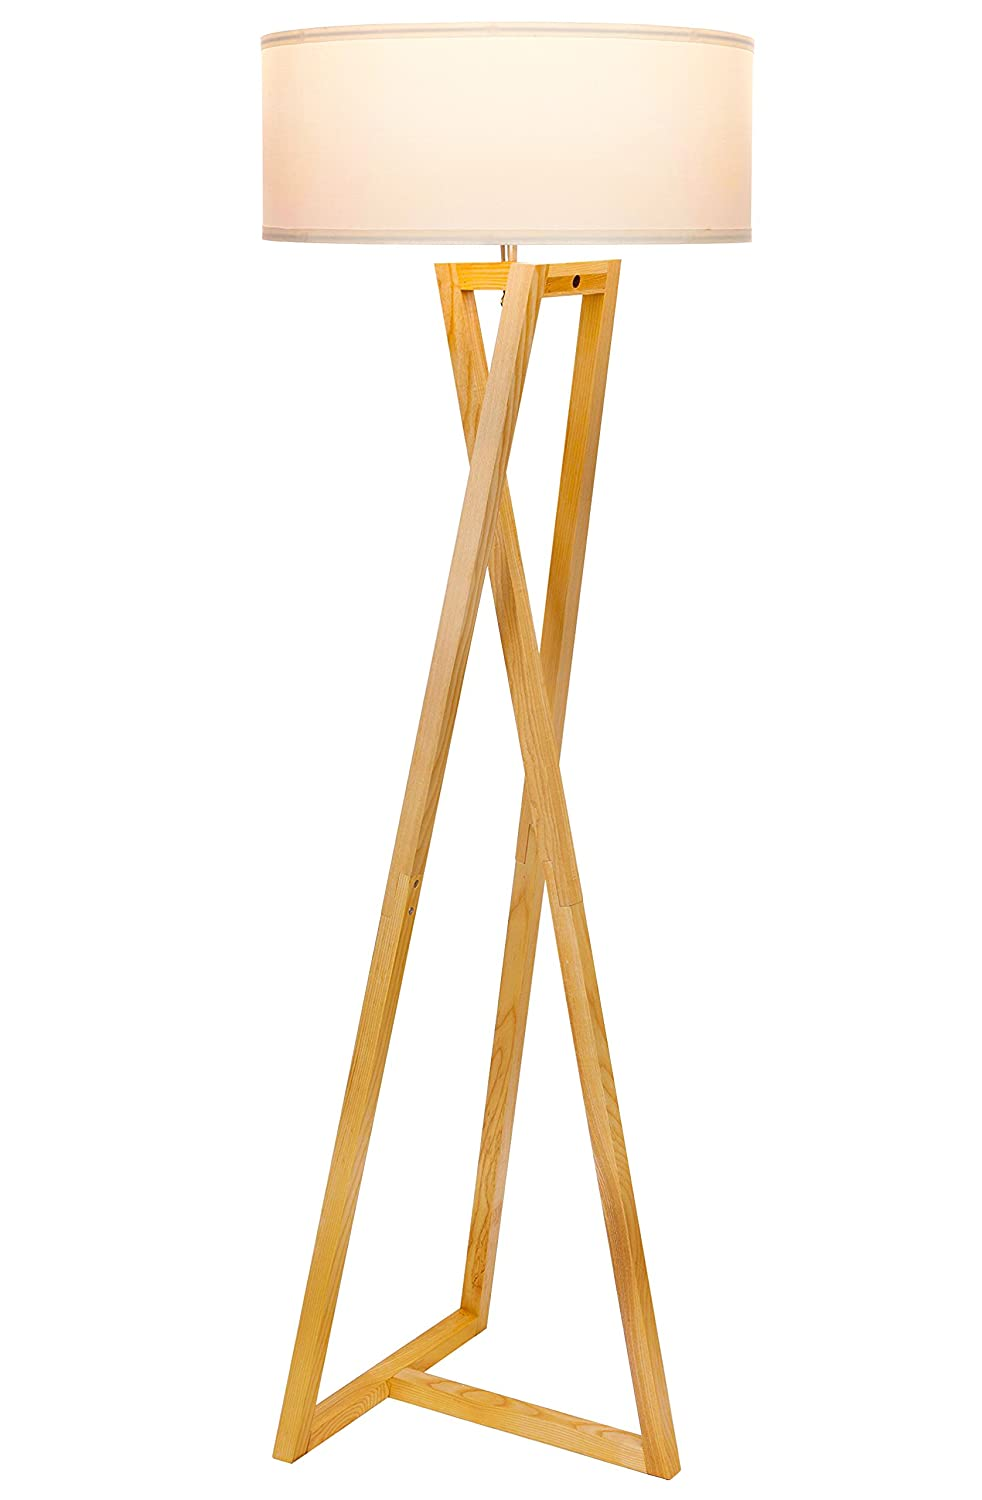 Brightechz wood tripod rustic floor lamp mid century modern standing led light for living rooms tall lighting for contemporary bedrooms offices